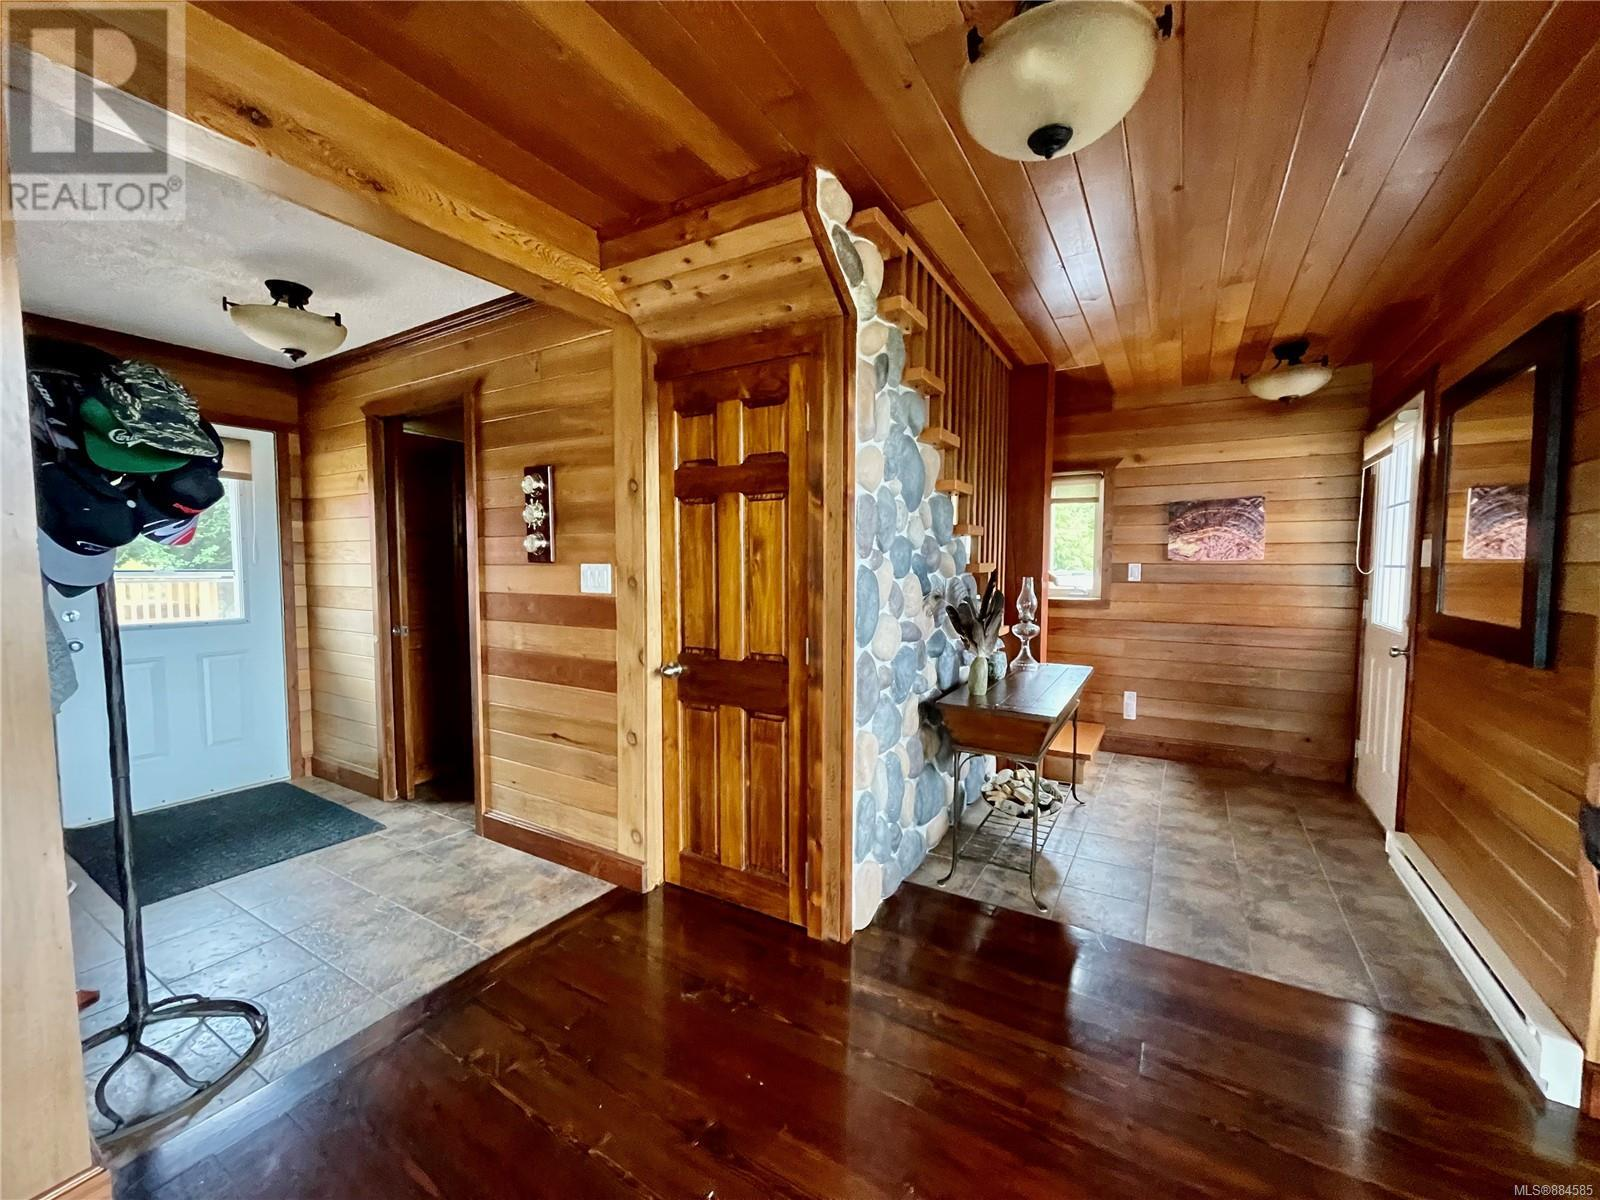 MLS® #884585 - Ucluelet House For sale Image #10